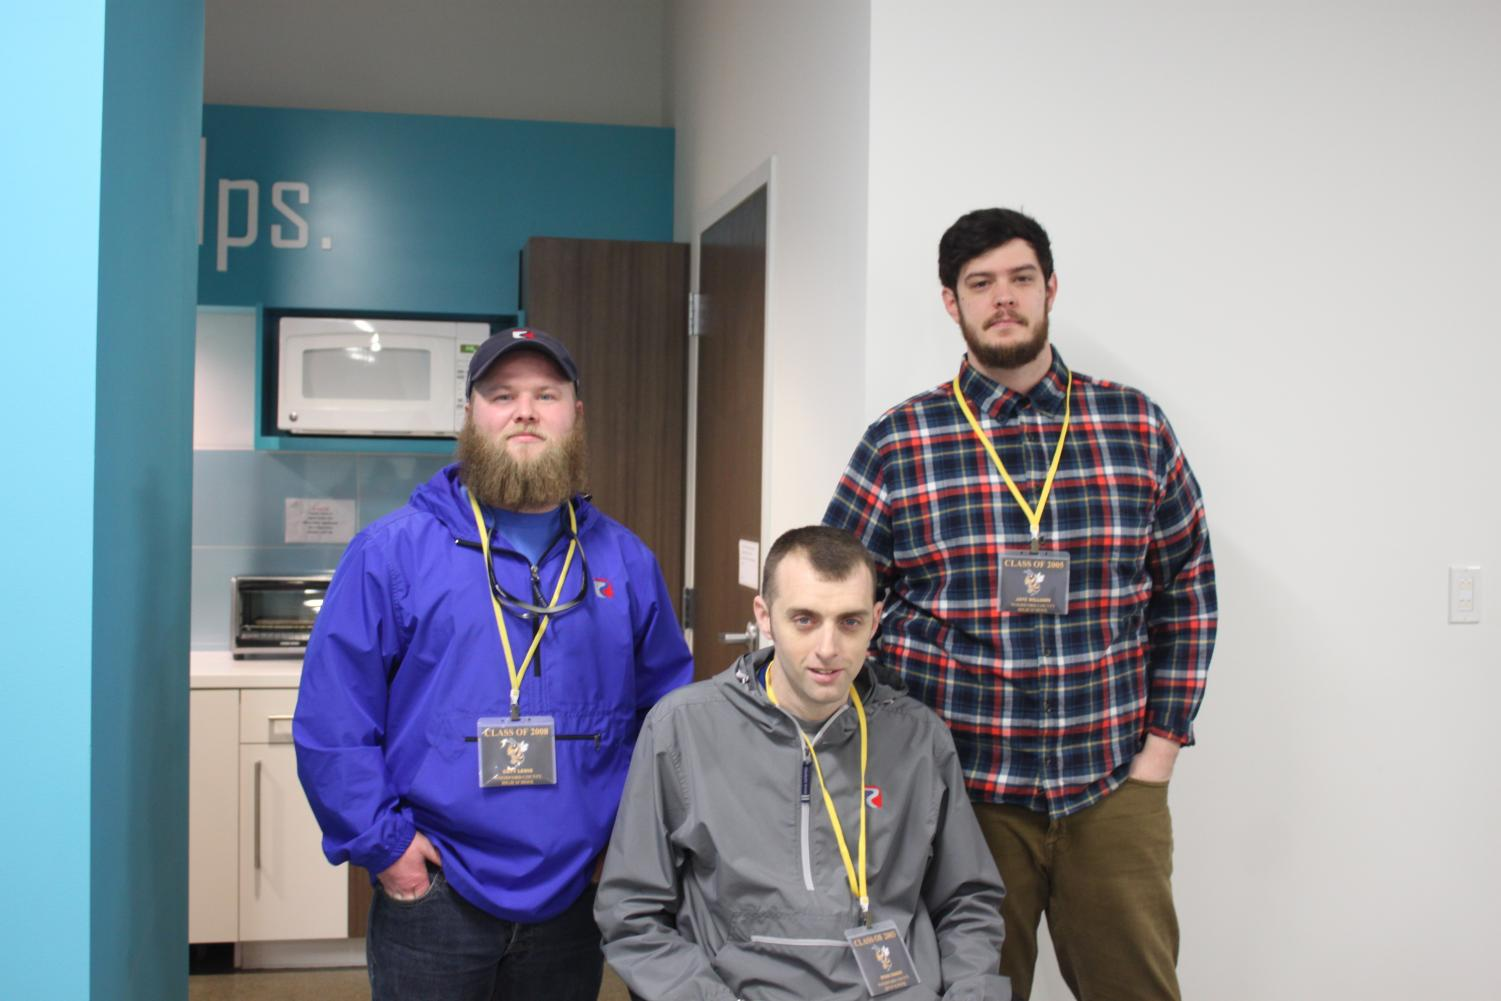 (Left) Cody Lewis, Ryan Couch, and Jaye Willams all work at Ruggles.